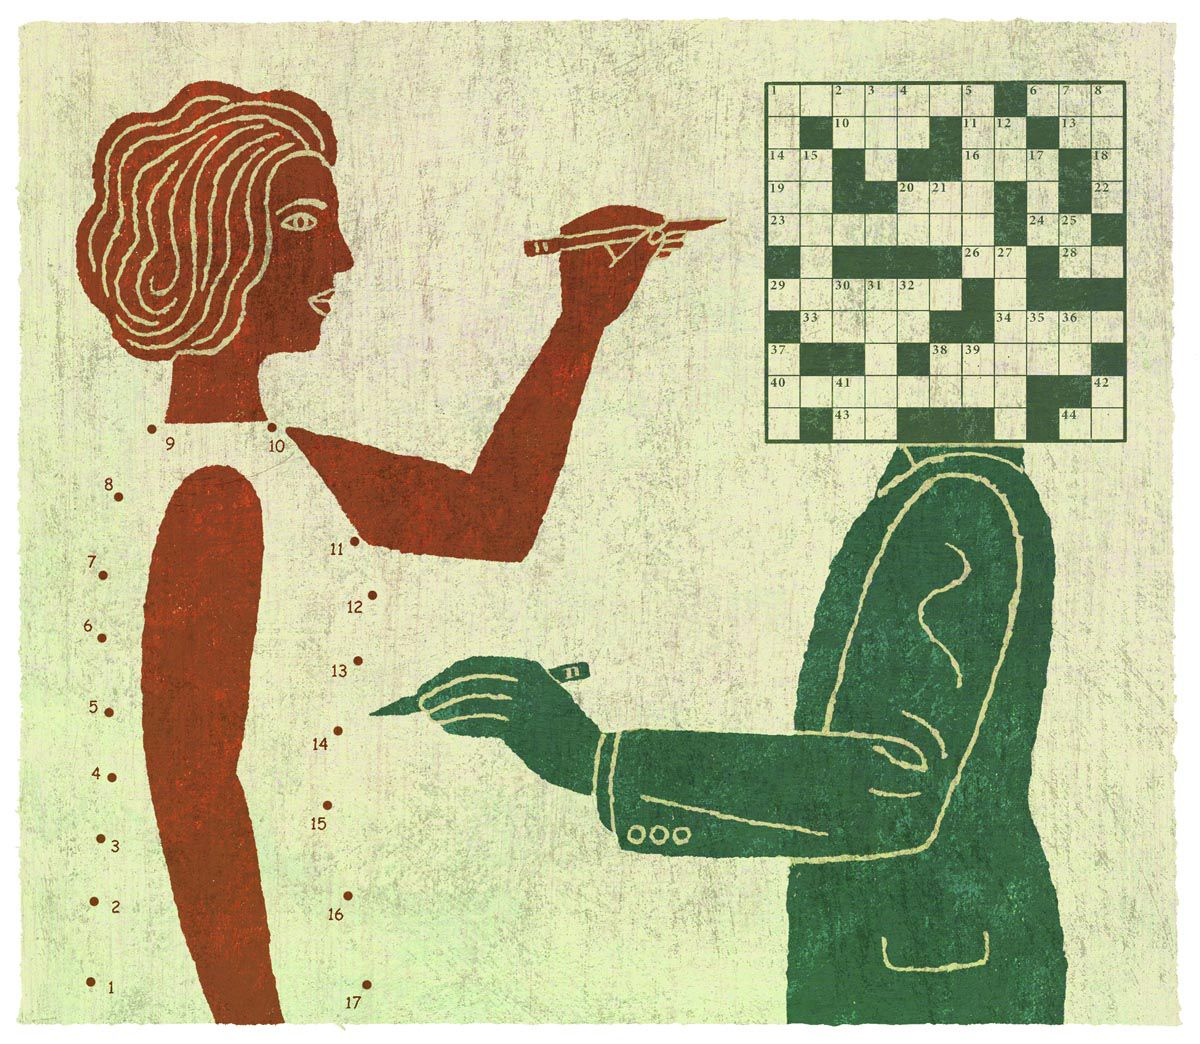 Finding the right therapist can feel like a puzzle, but the results of a careful search are worth it.